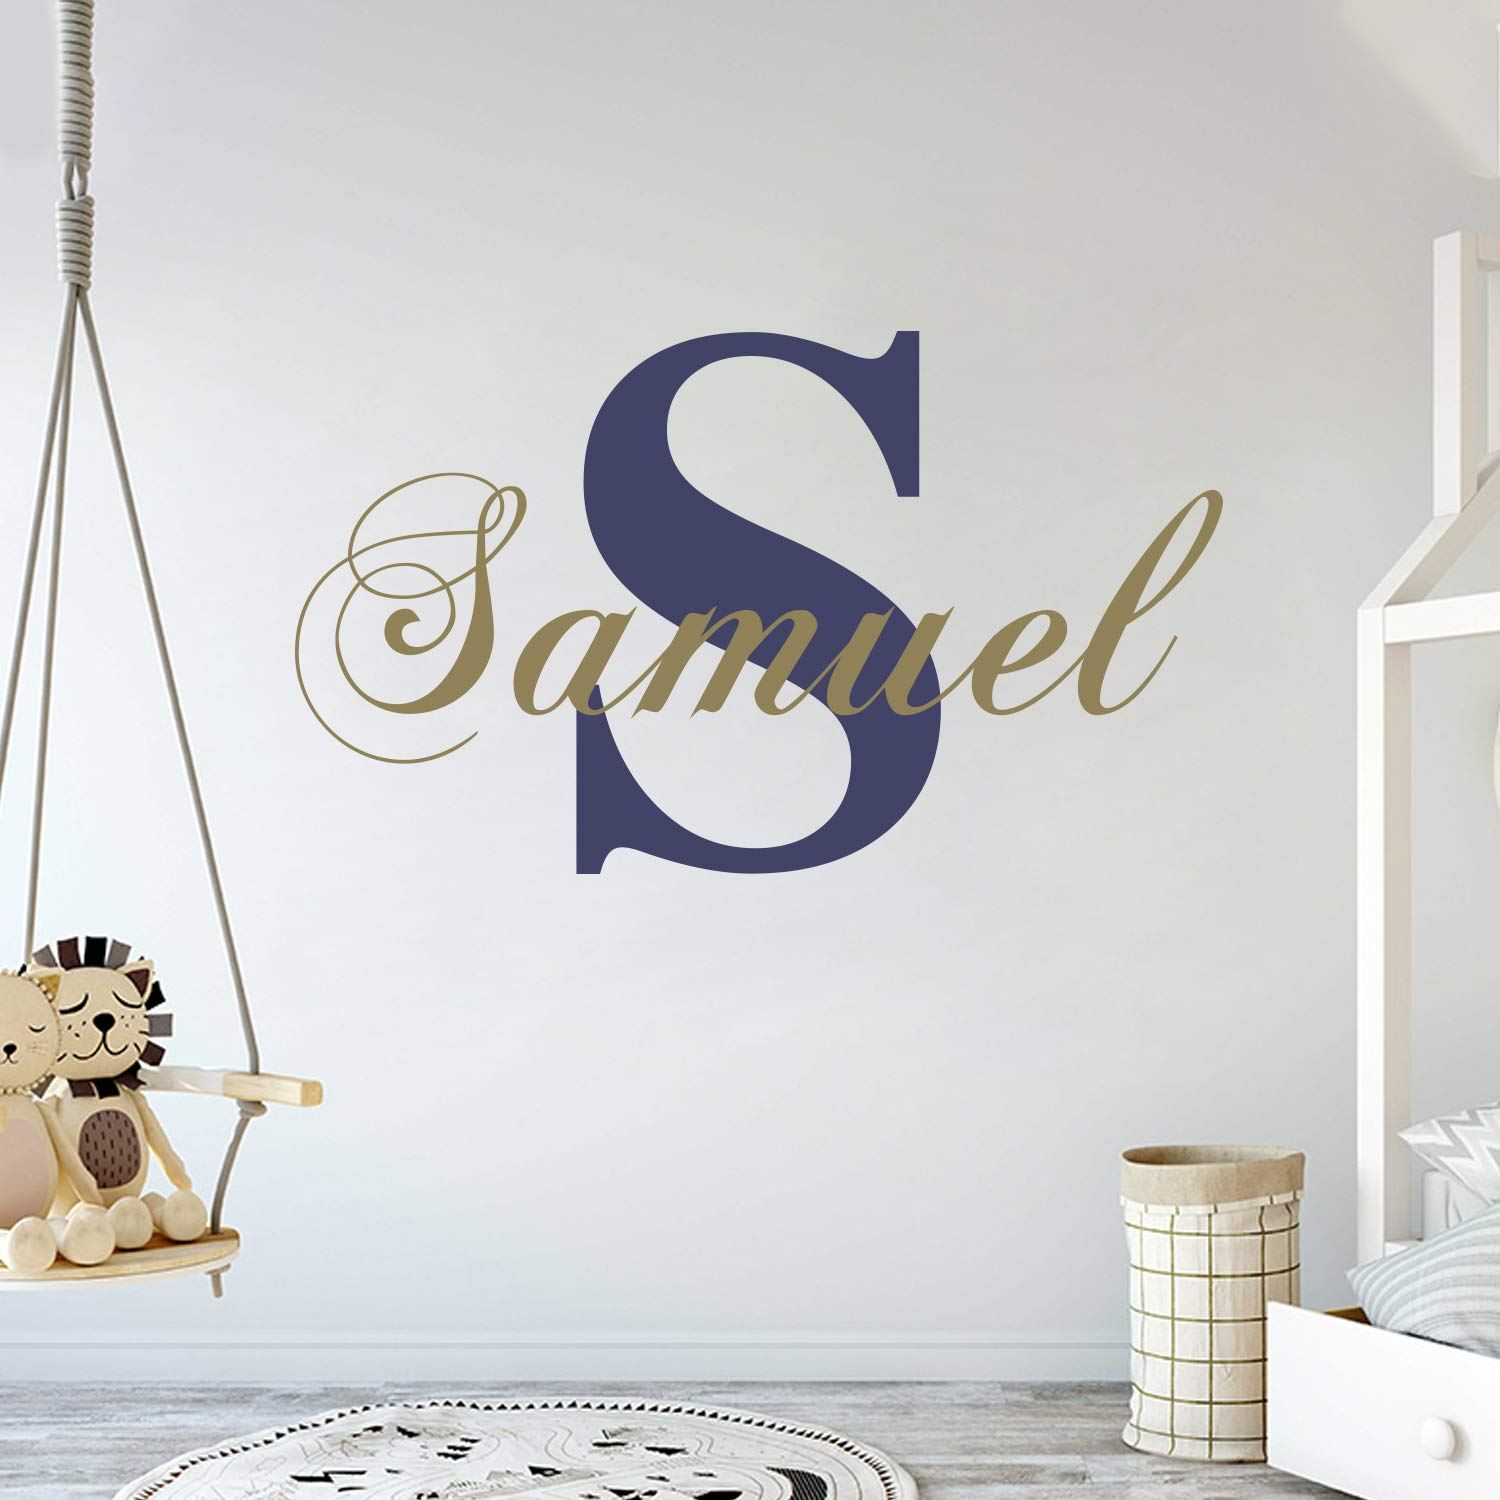 Personalized Name & Initial Classic Edition - Prime Series - Baby Girl - Nursery Wall Decal For Baby Room Decorations - Mural Wall Decal Sticker For Home Children's Bedroom(MM39) (Wide 22''x11'' Height) by cryptonite